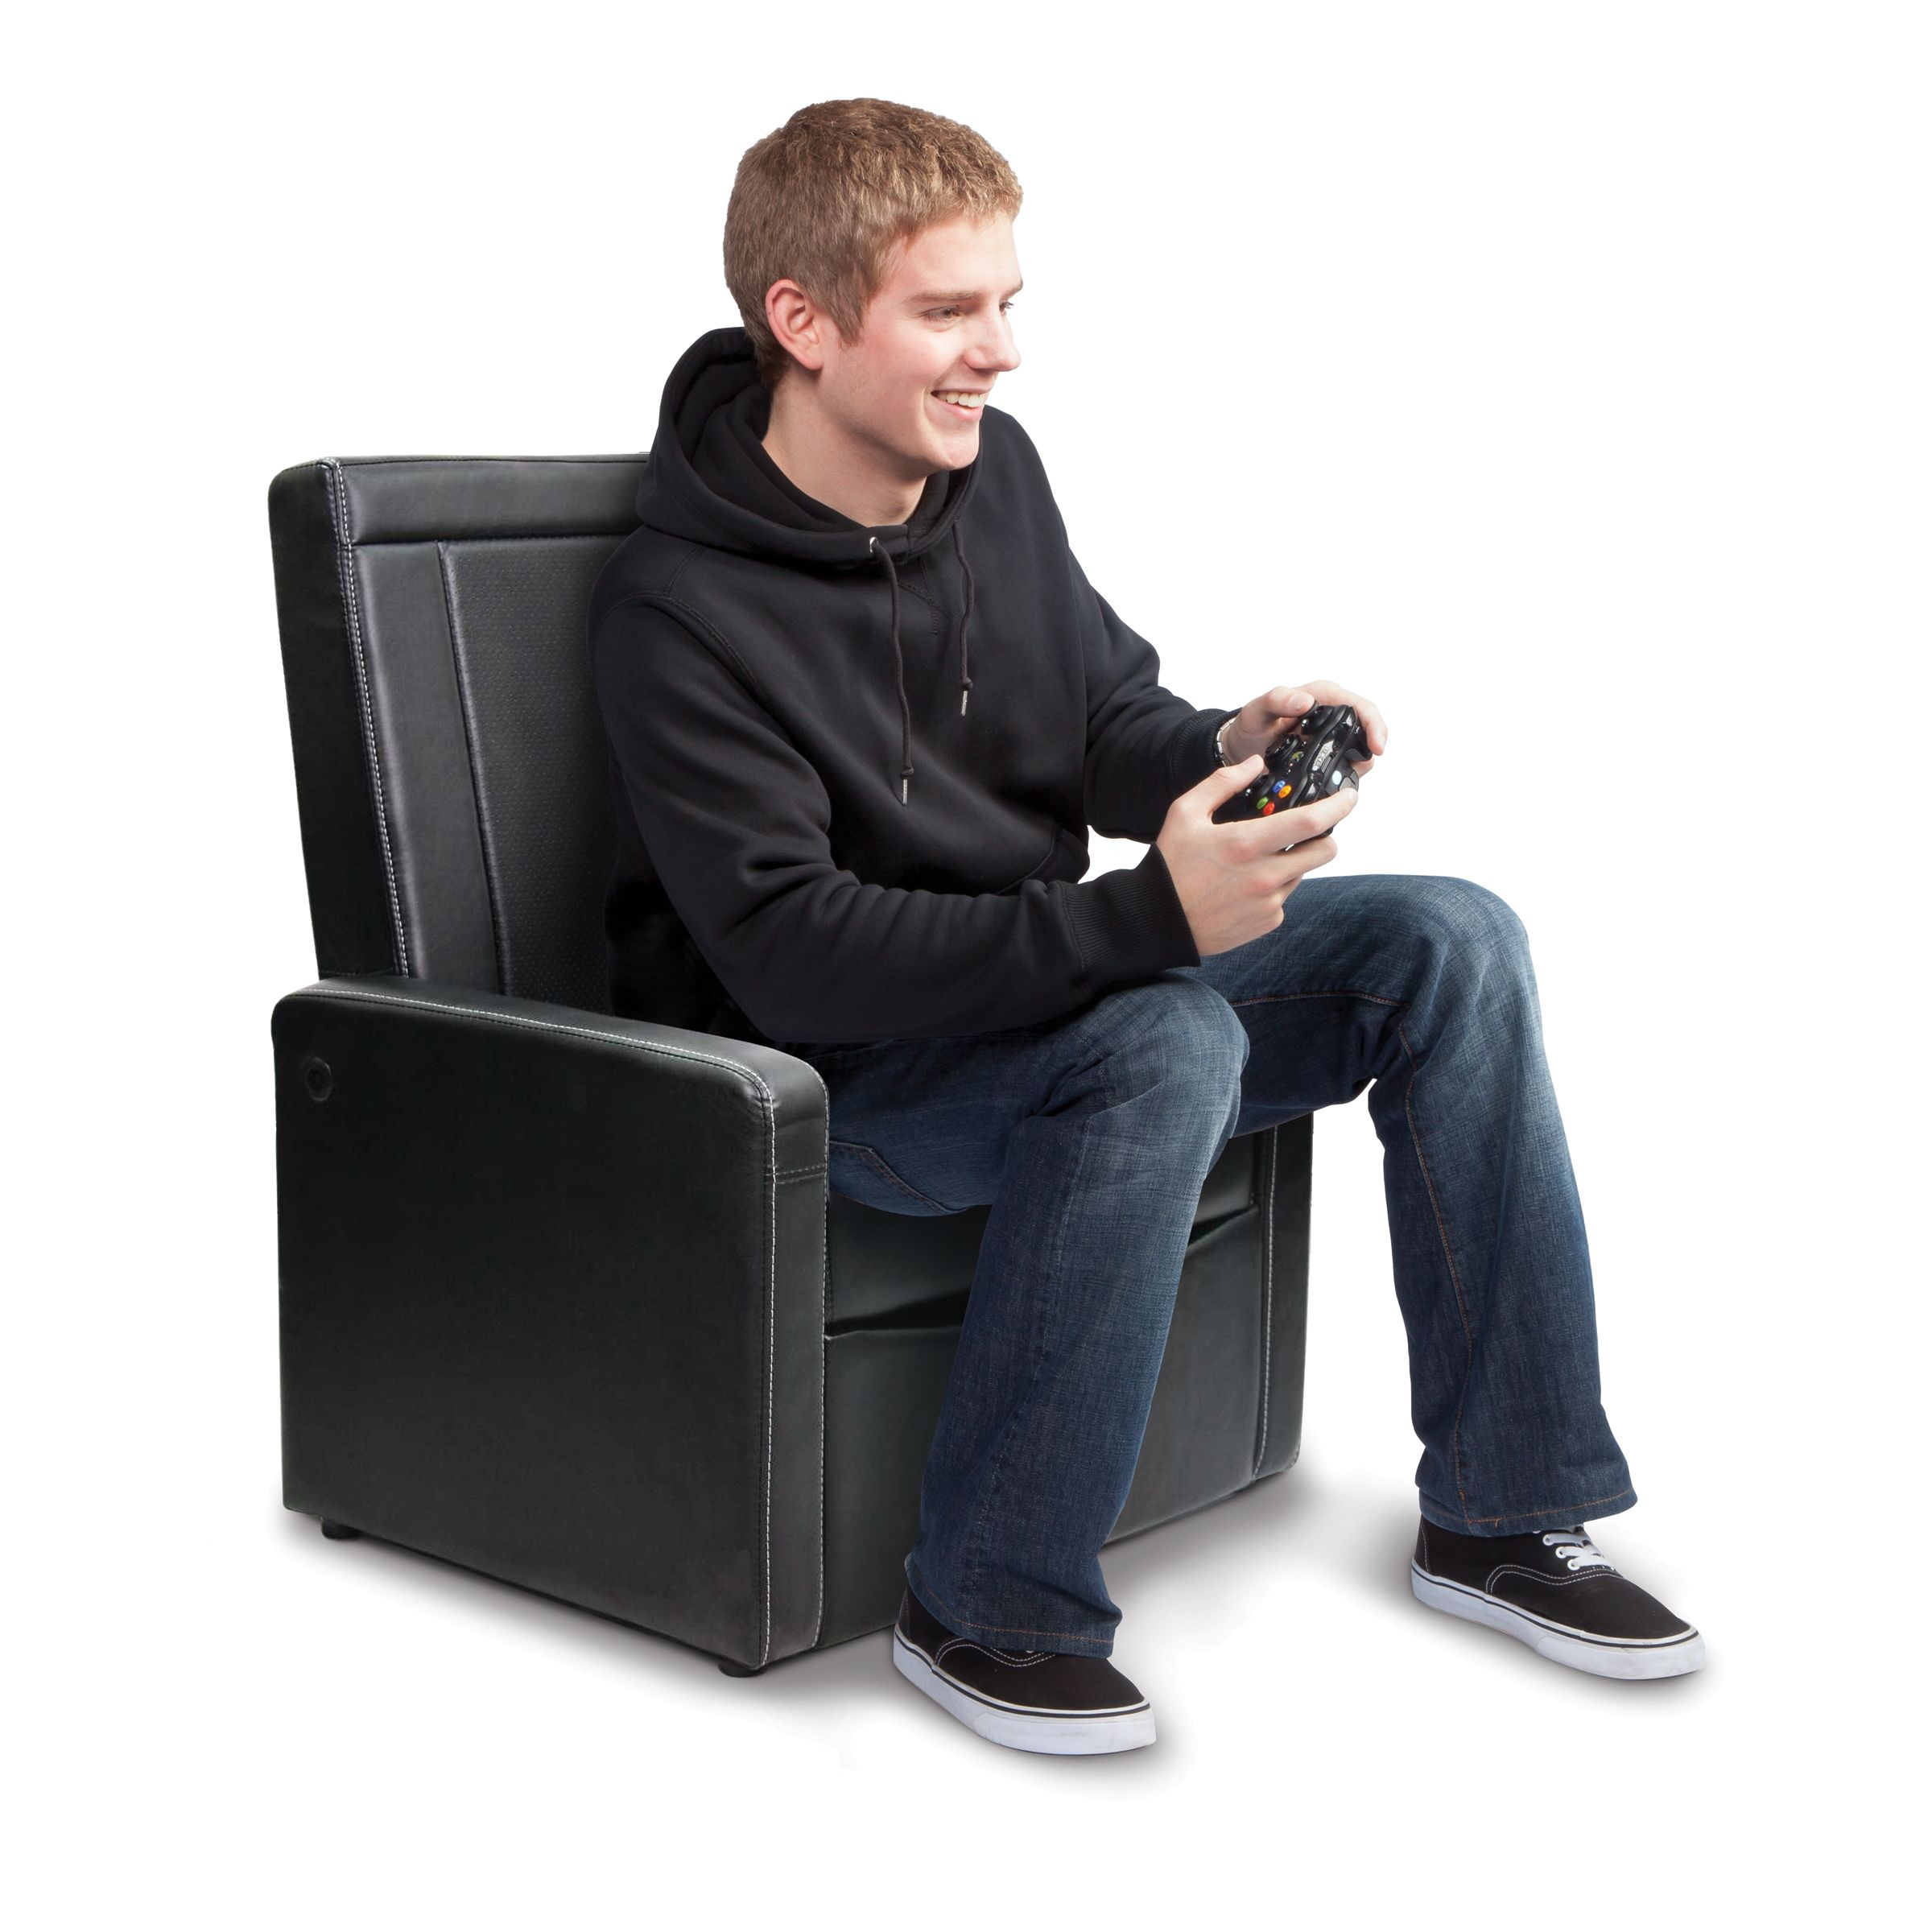 gaming sound video cool these infiniti wireless full s are game officially licensed december room size rocker just ii donut x of walmartcom playstation how chair